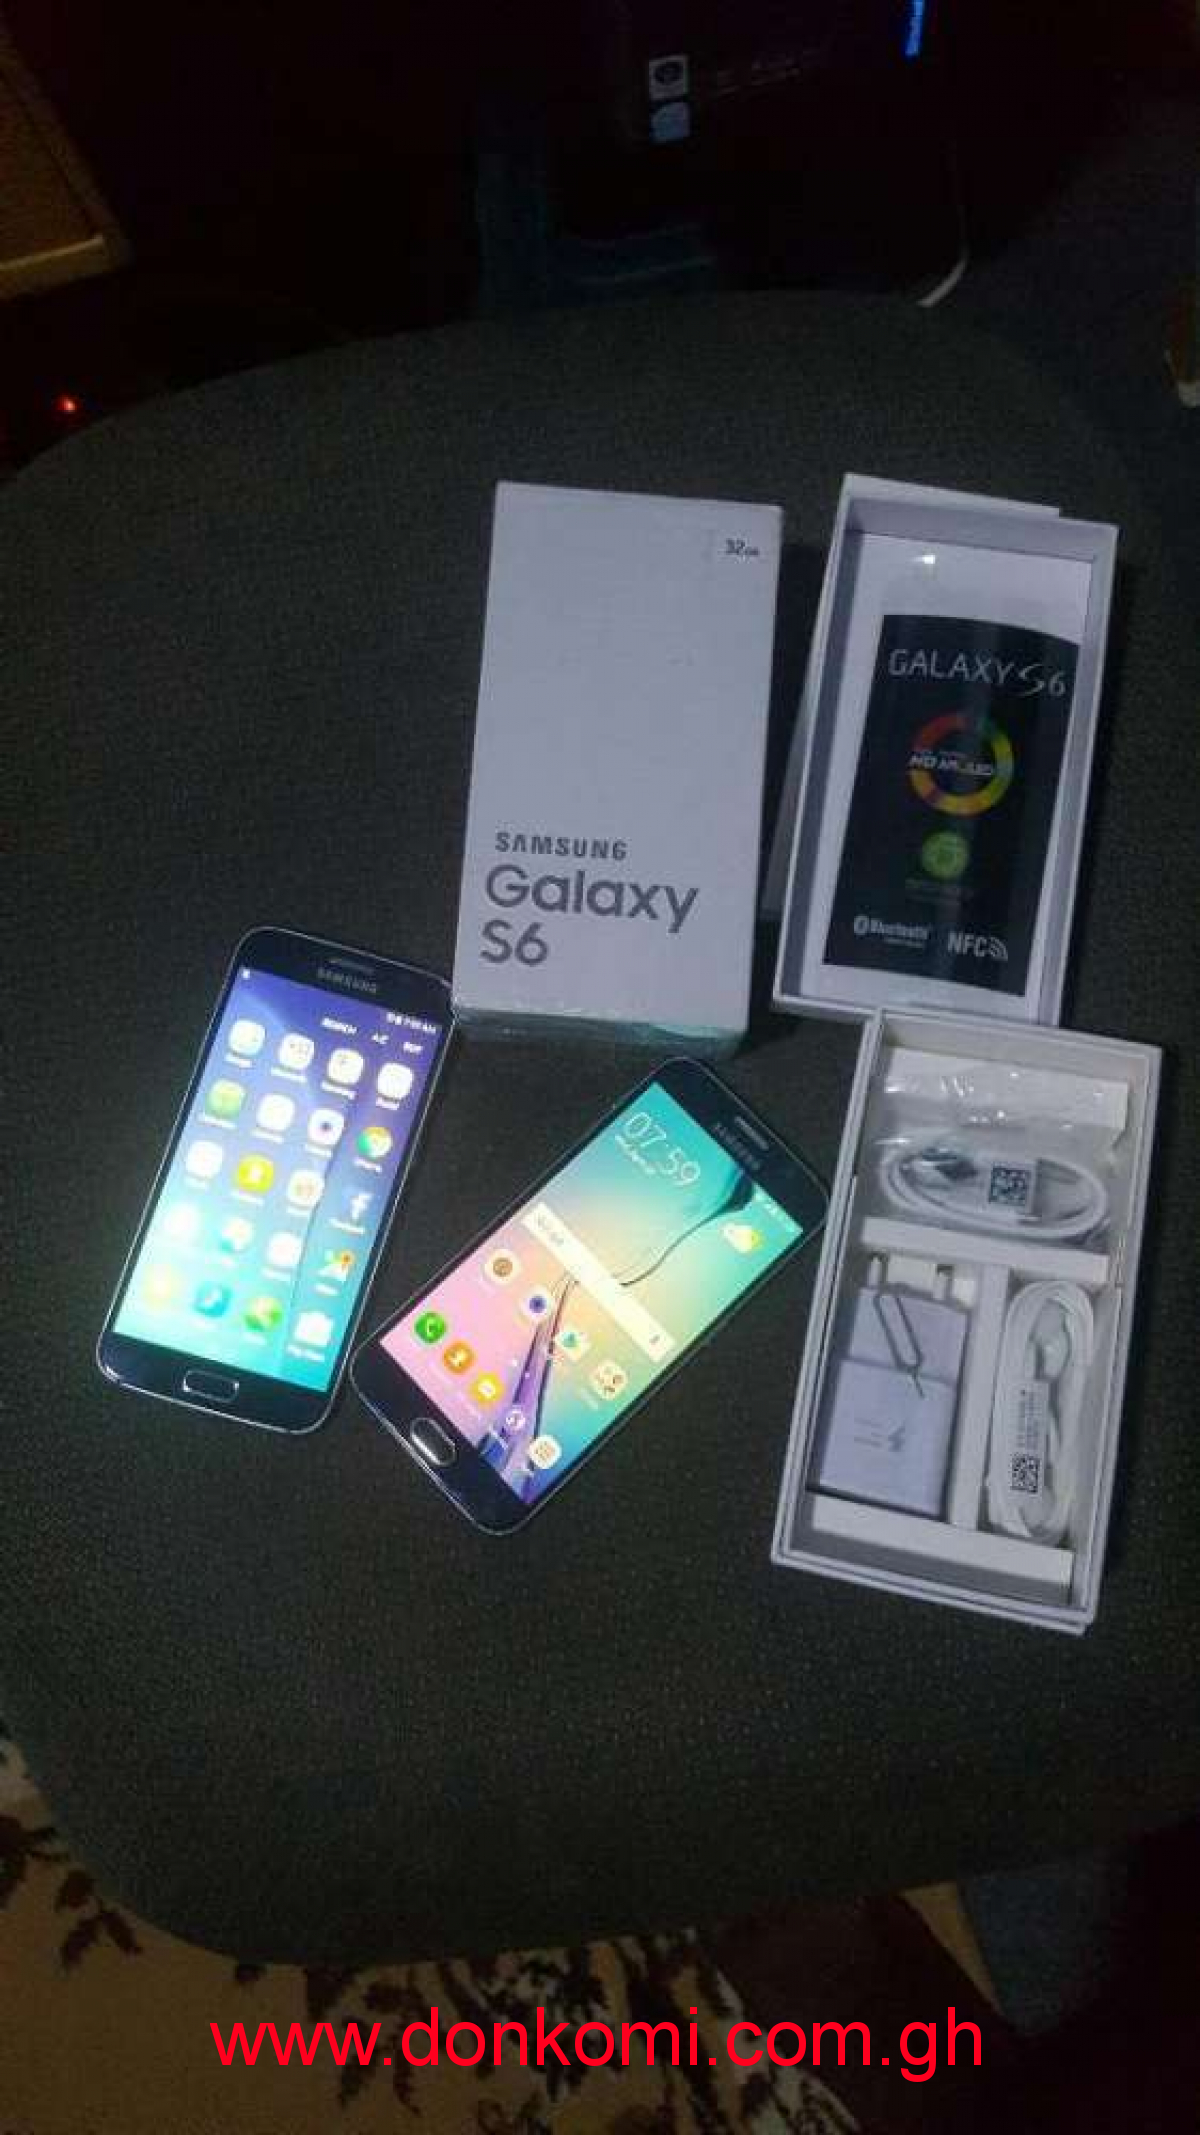 32gb Original Galaxy S6 in Box